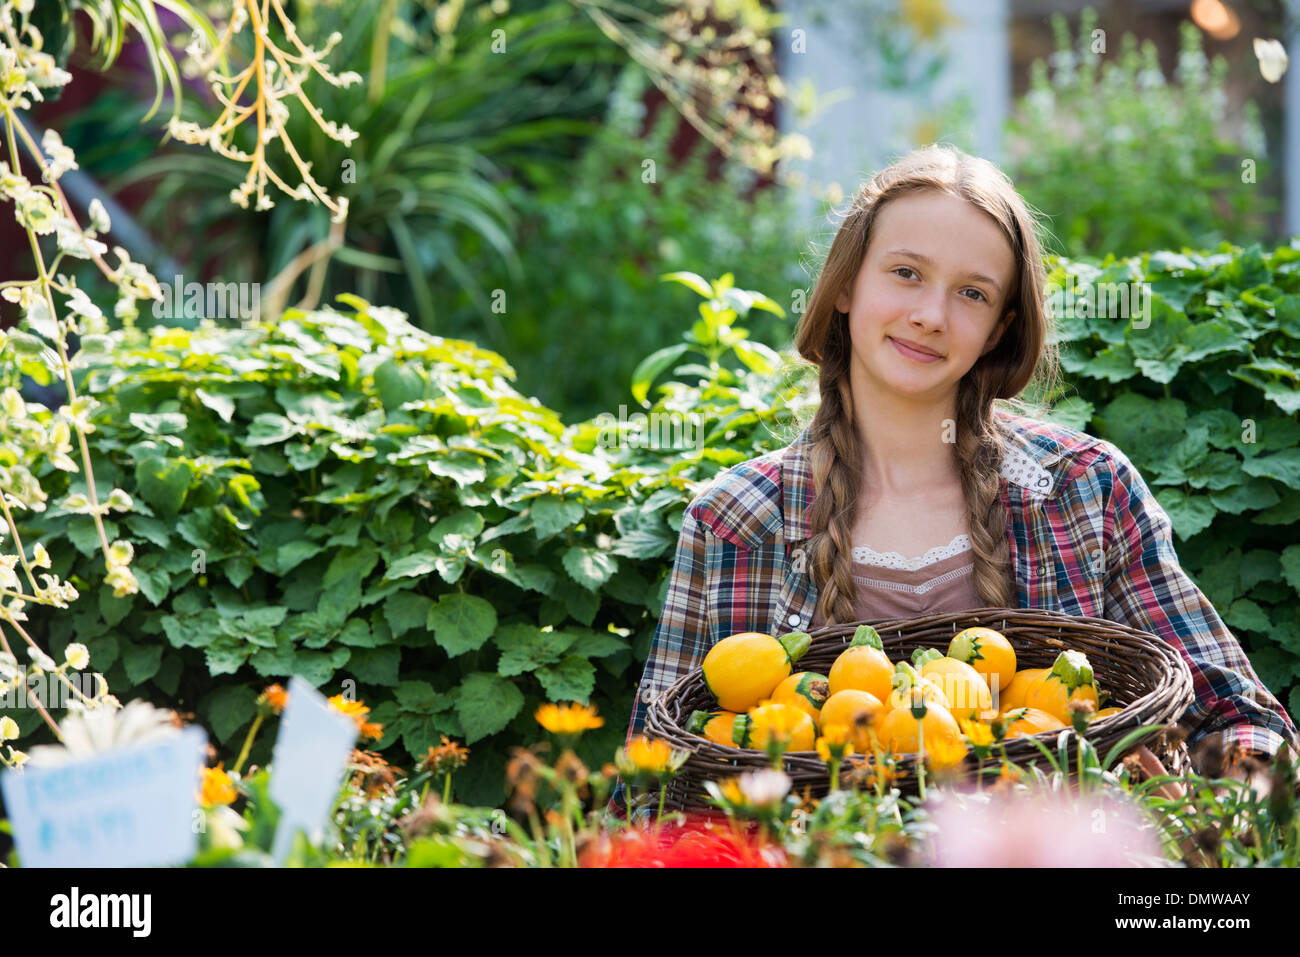 Summer on an organic farm. A girl holding a basket of fresh squash vegetables. Stock Photo